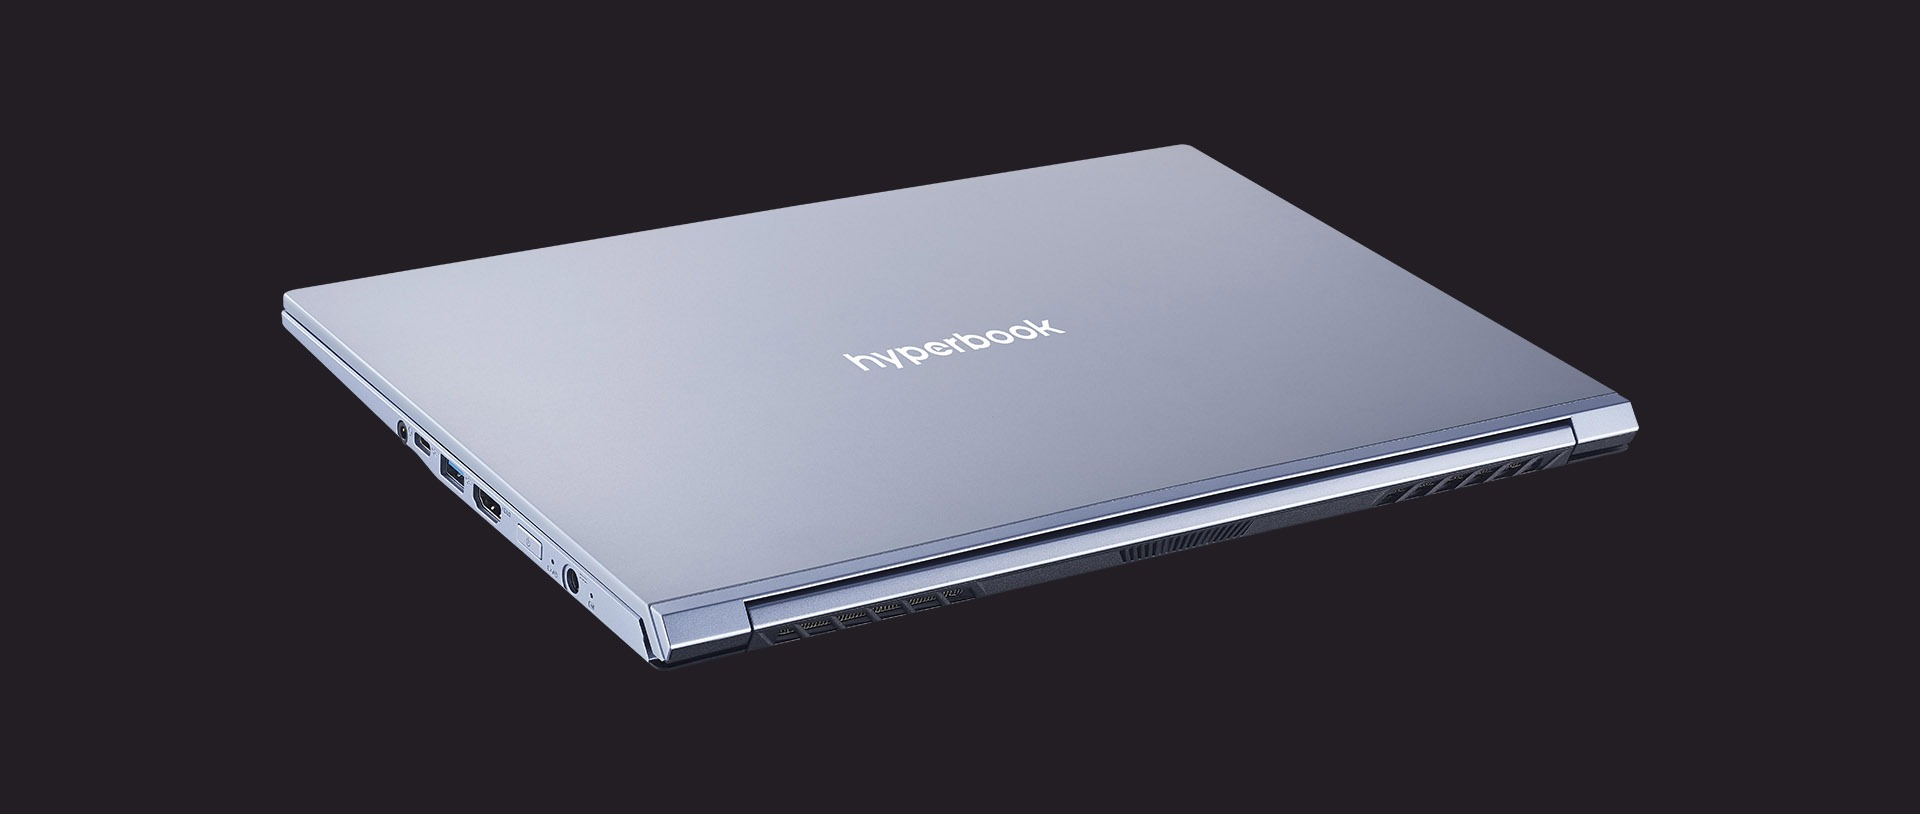 HYPERBOOK NV4 26